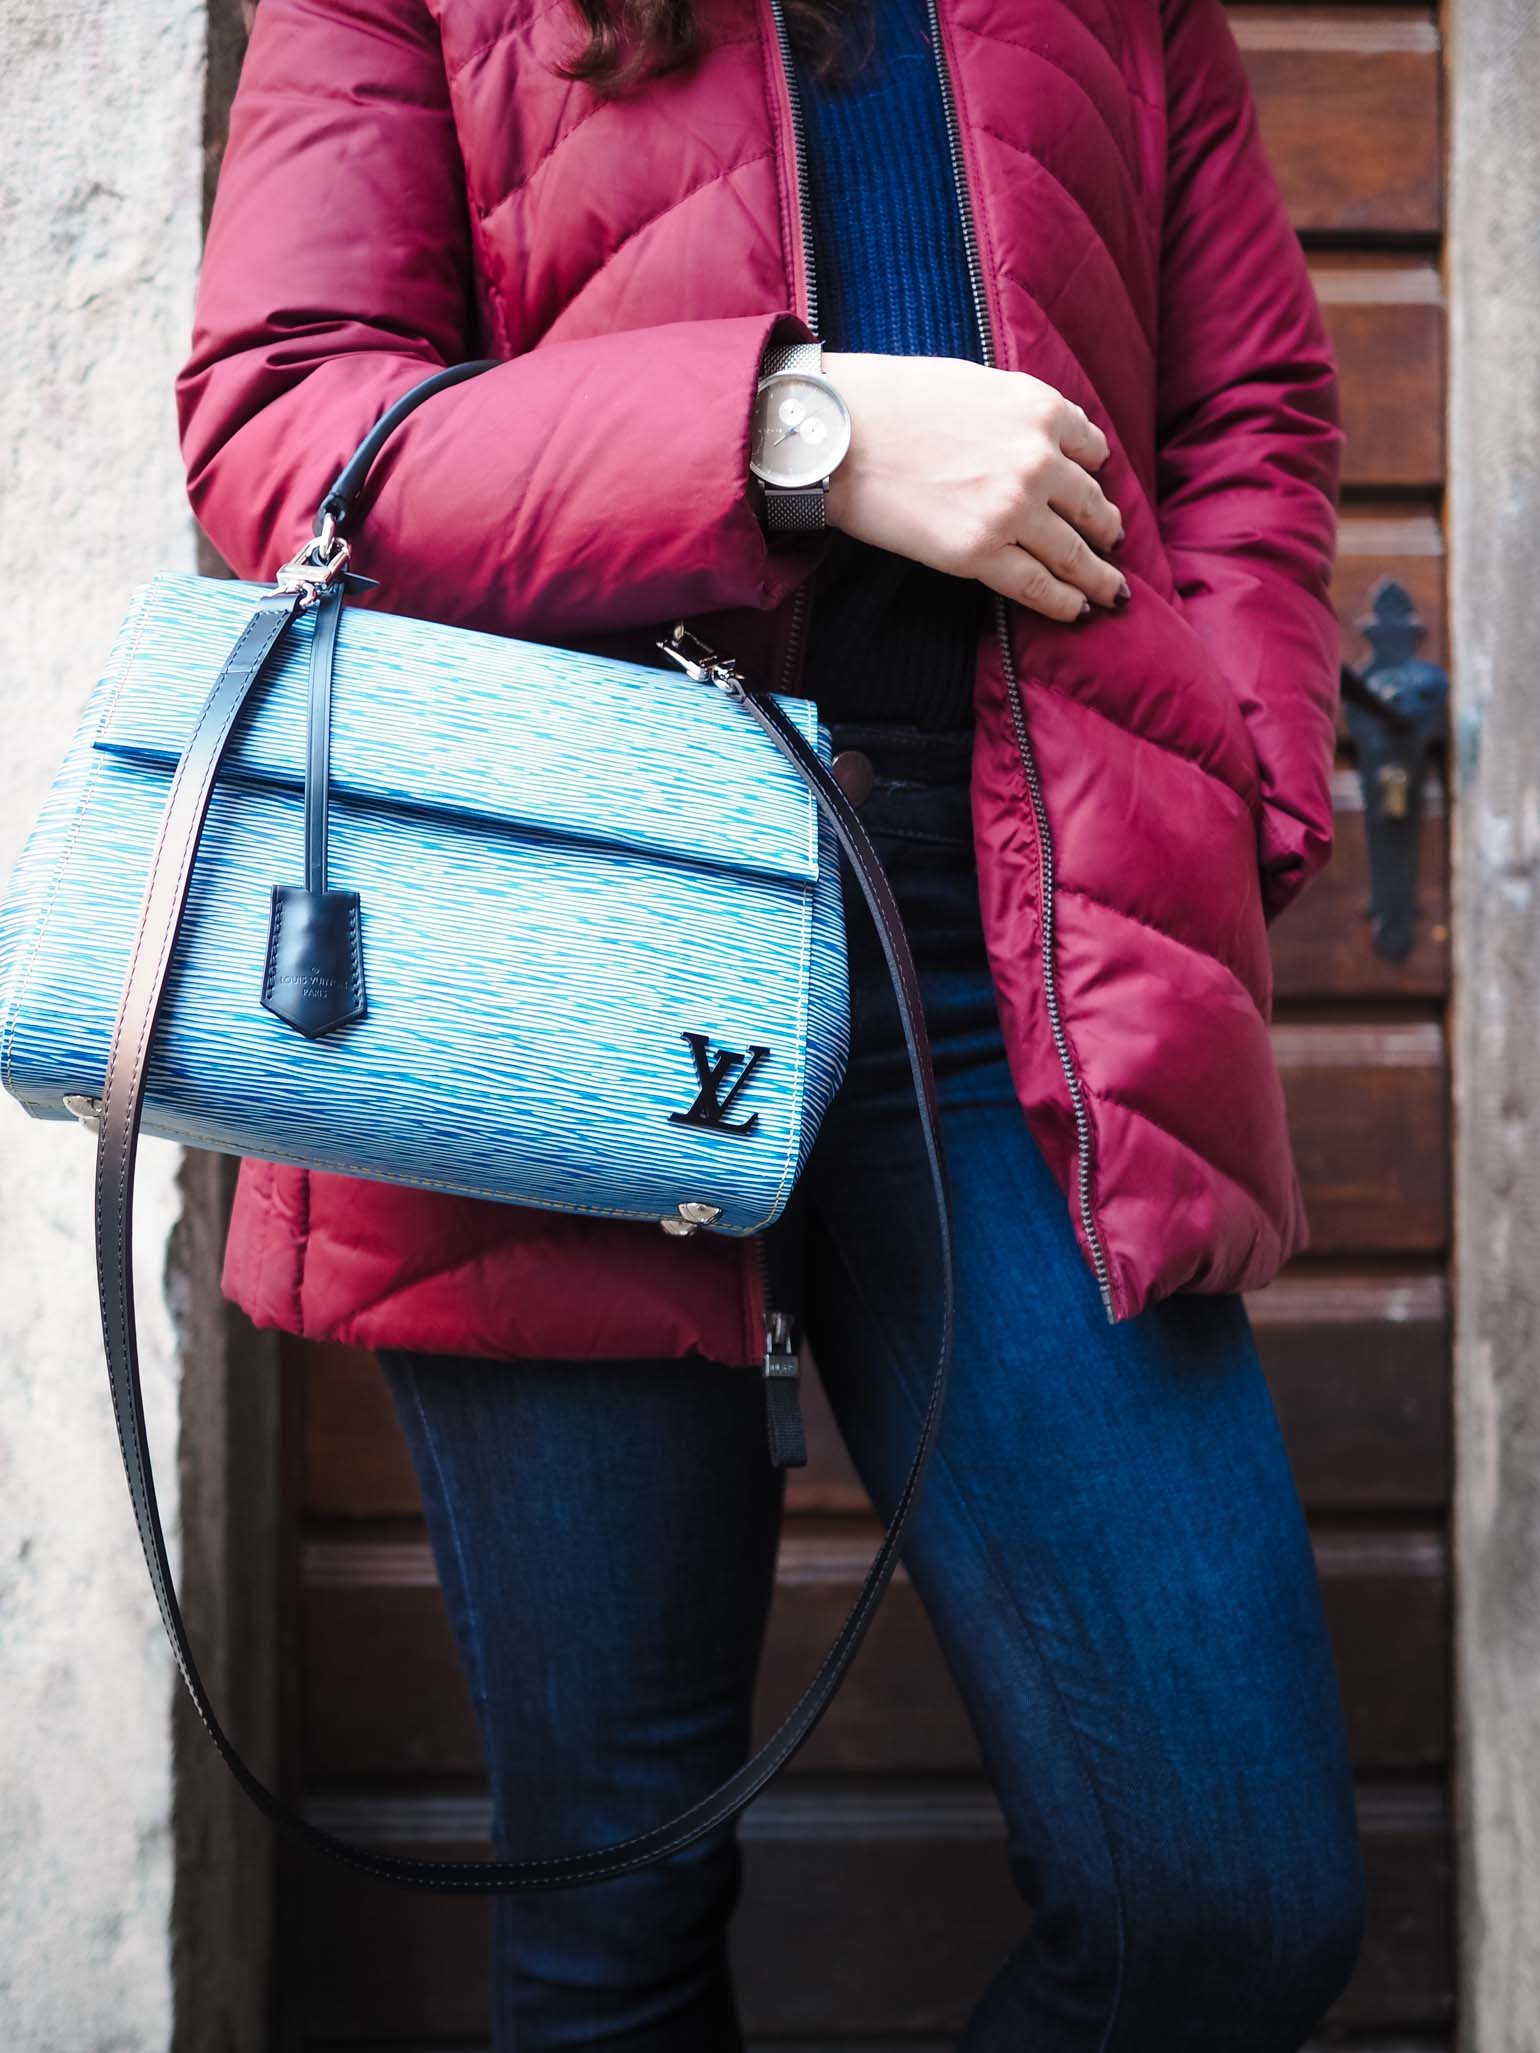 Luxury Handbag Review: Louis Vuitton Cluny BB - The Brunette Nomad, Dallas Fashion Blogger